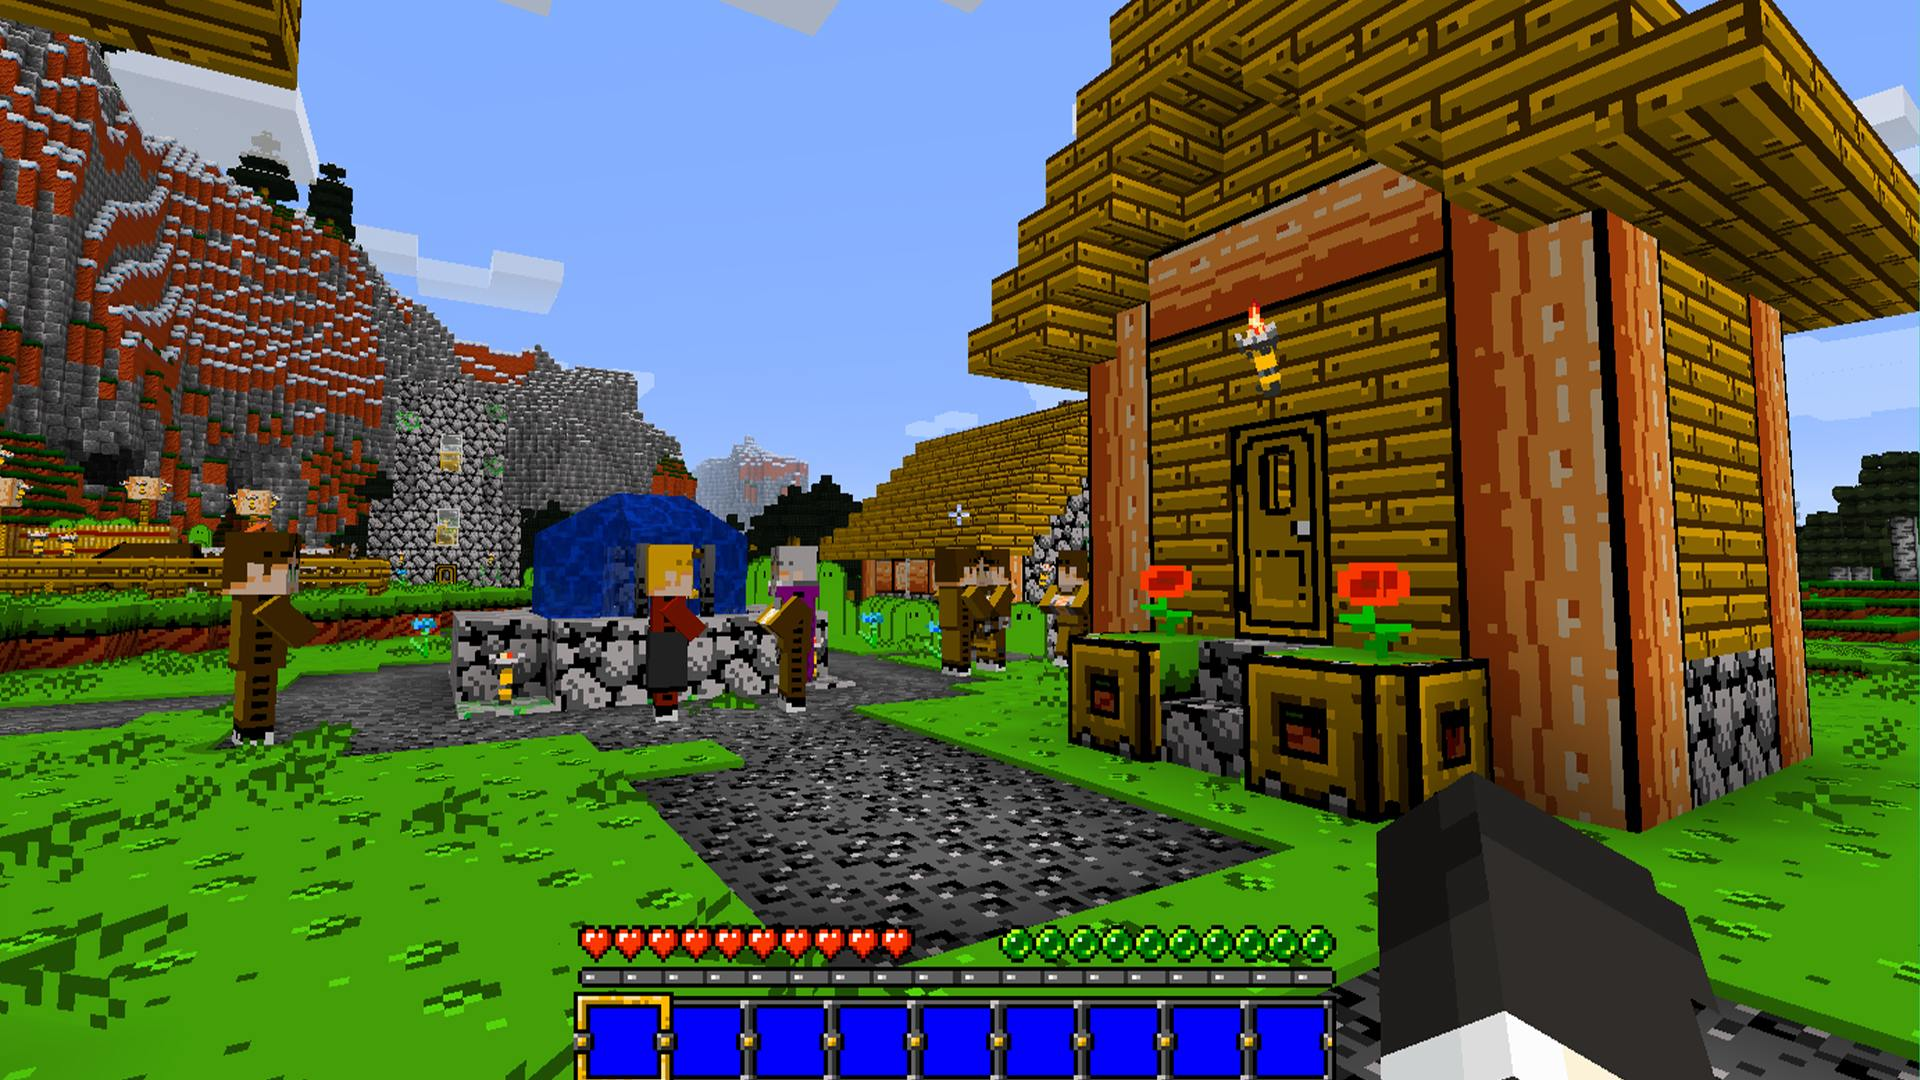 Best Minecraft Texture Packs For Java Edition In 2020 Pcgamesn